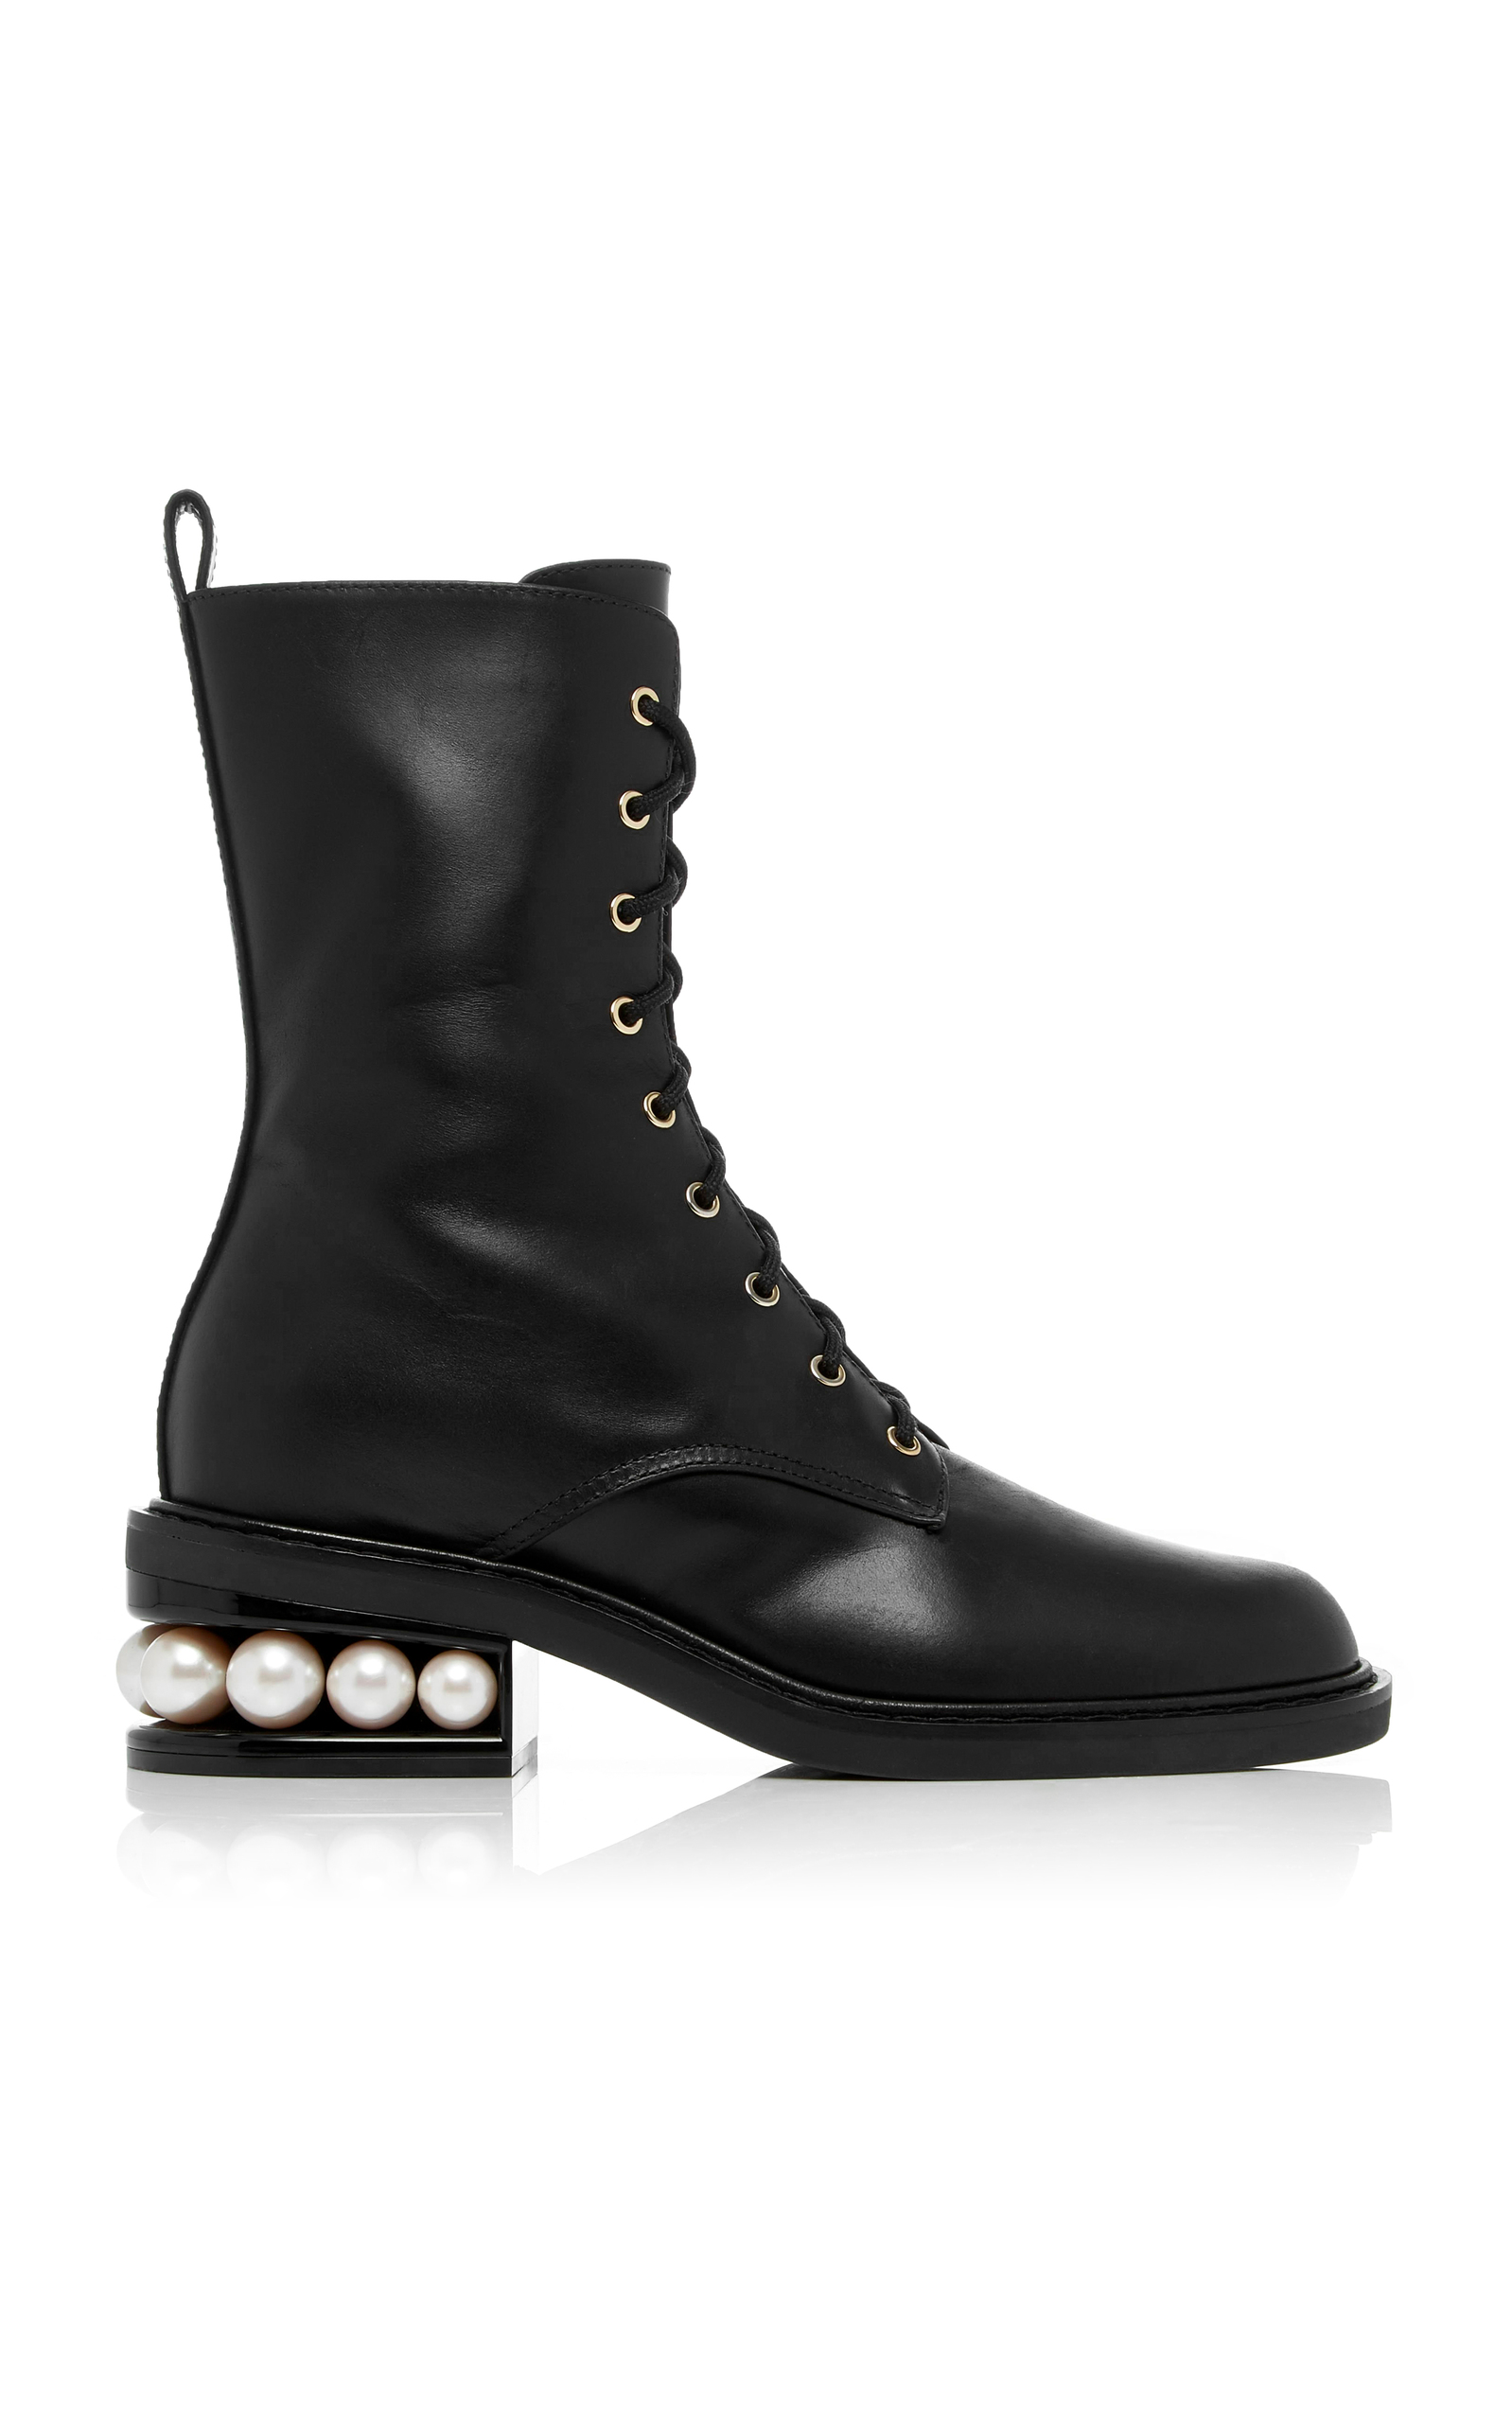 Casati Leather Combat Boots - Black Size 6